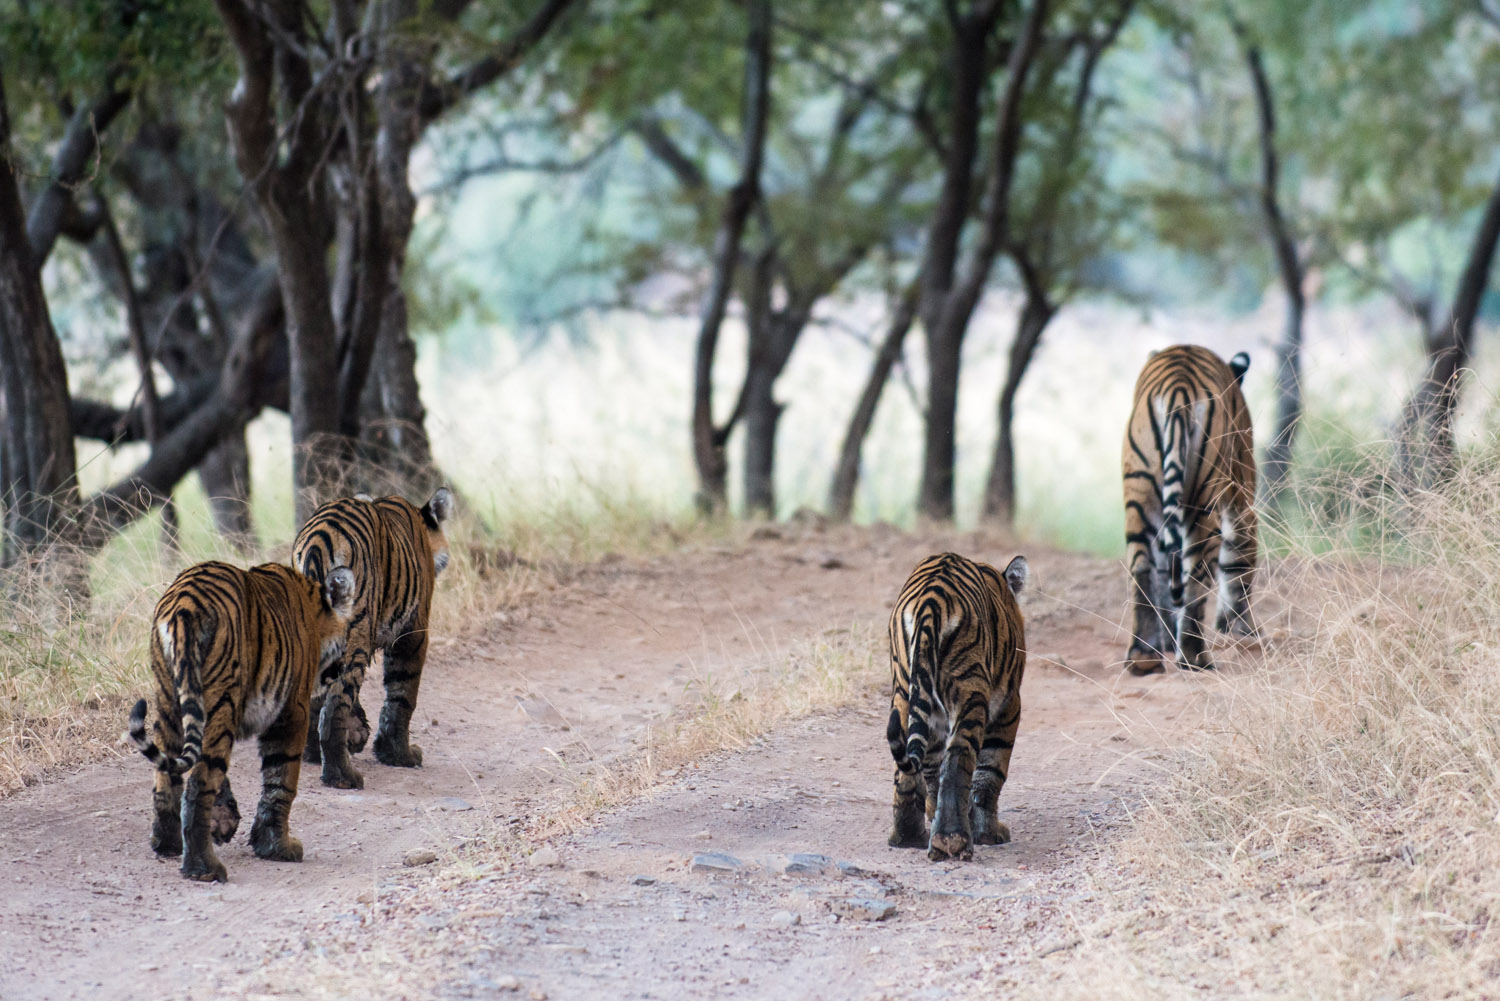 Bengal tiger family walking along track, Ranthambhore National Park, Rajasthan, India